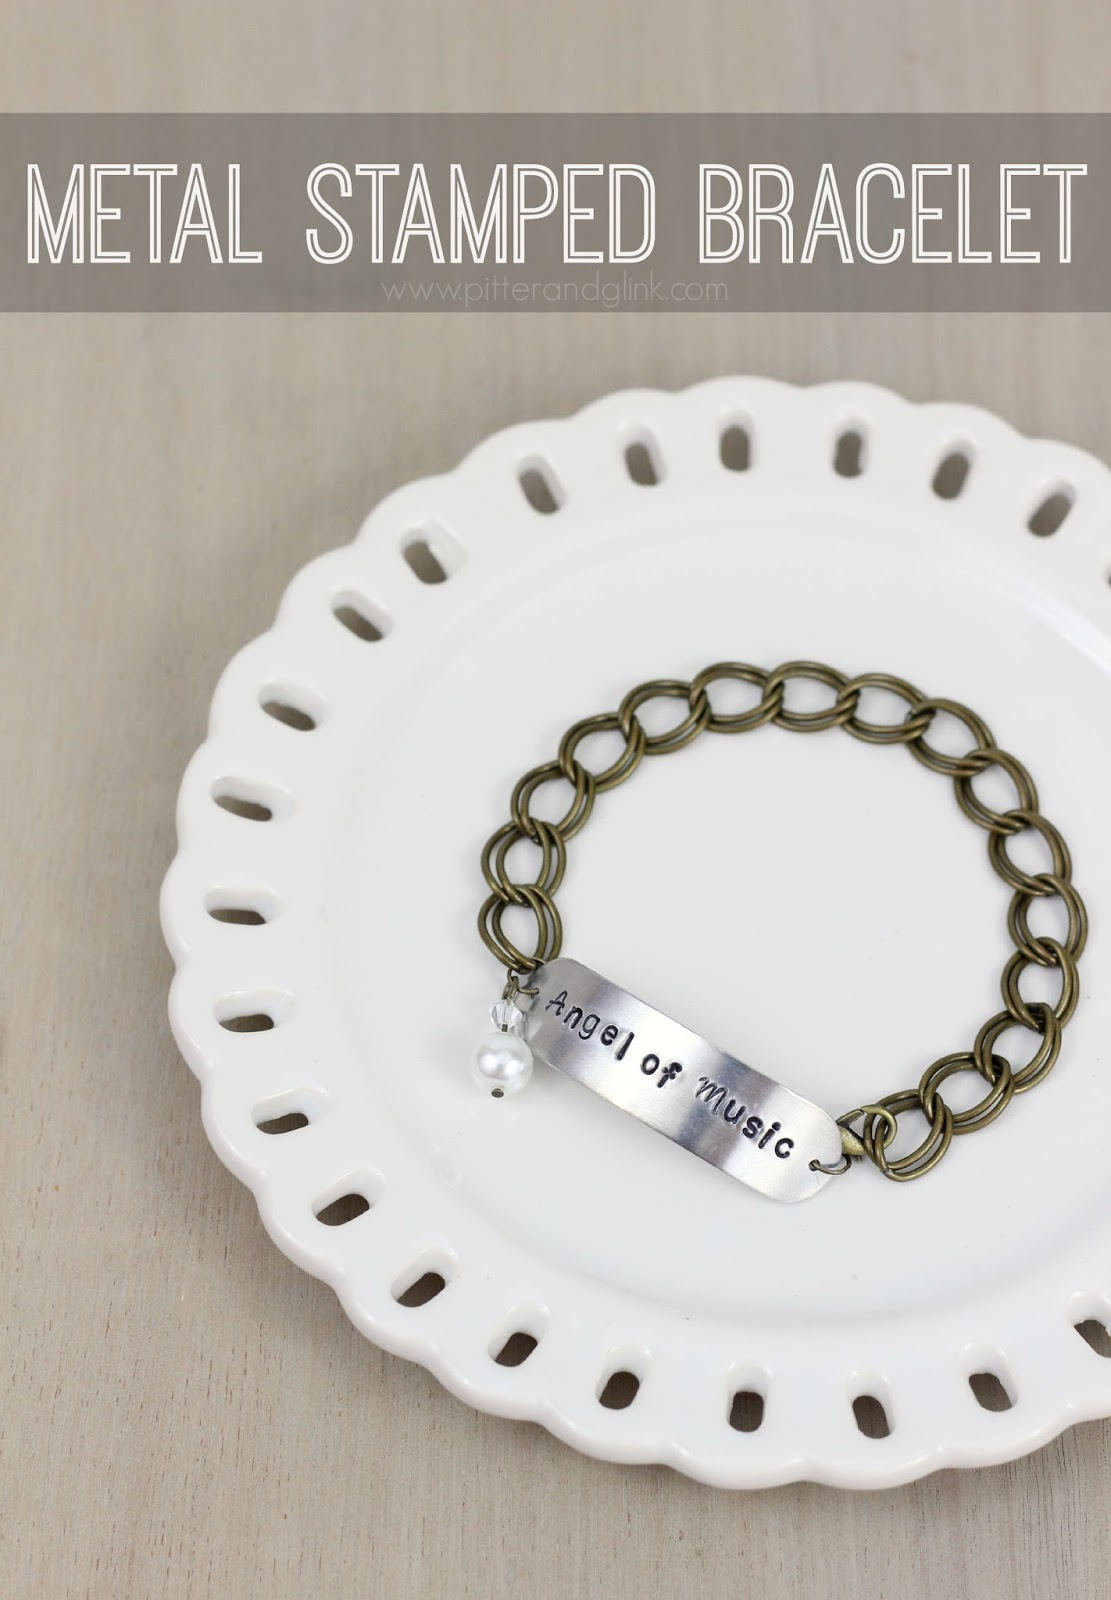 DIY Metal Stamped Bracelet via pitterandglink.com